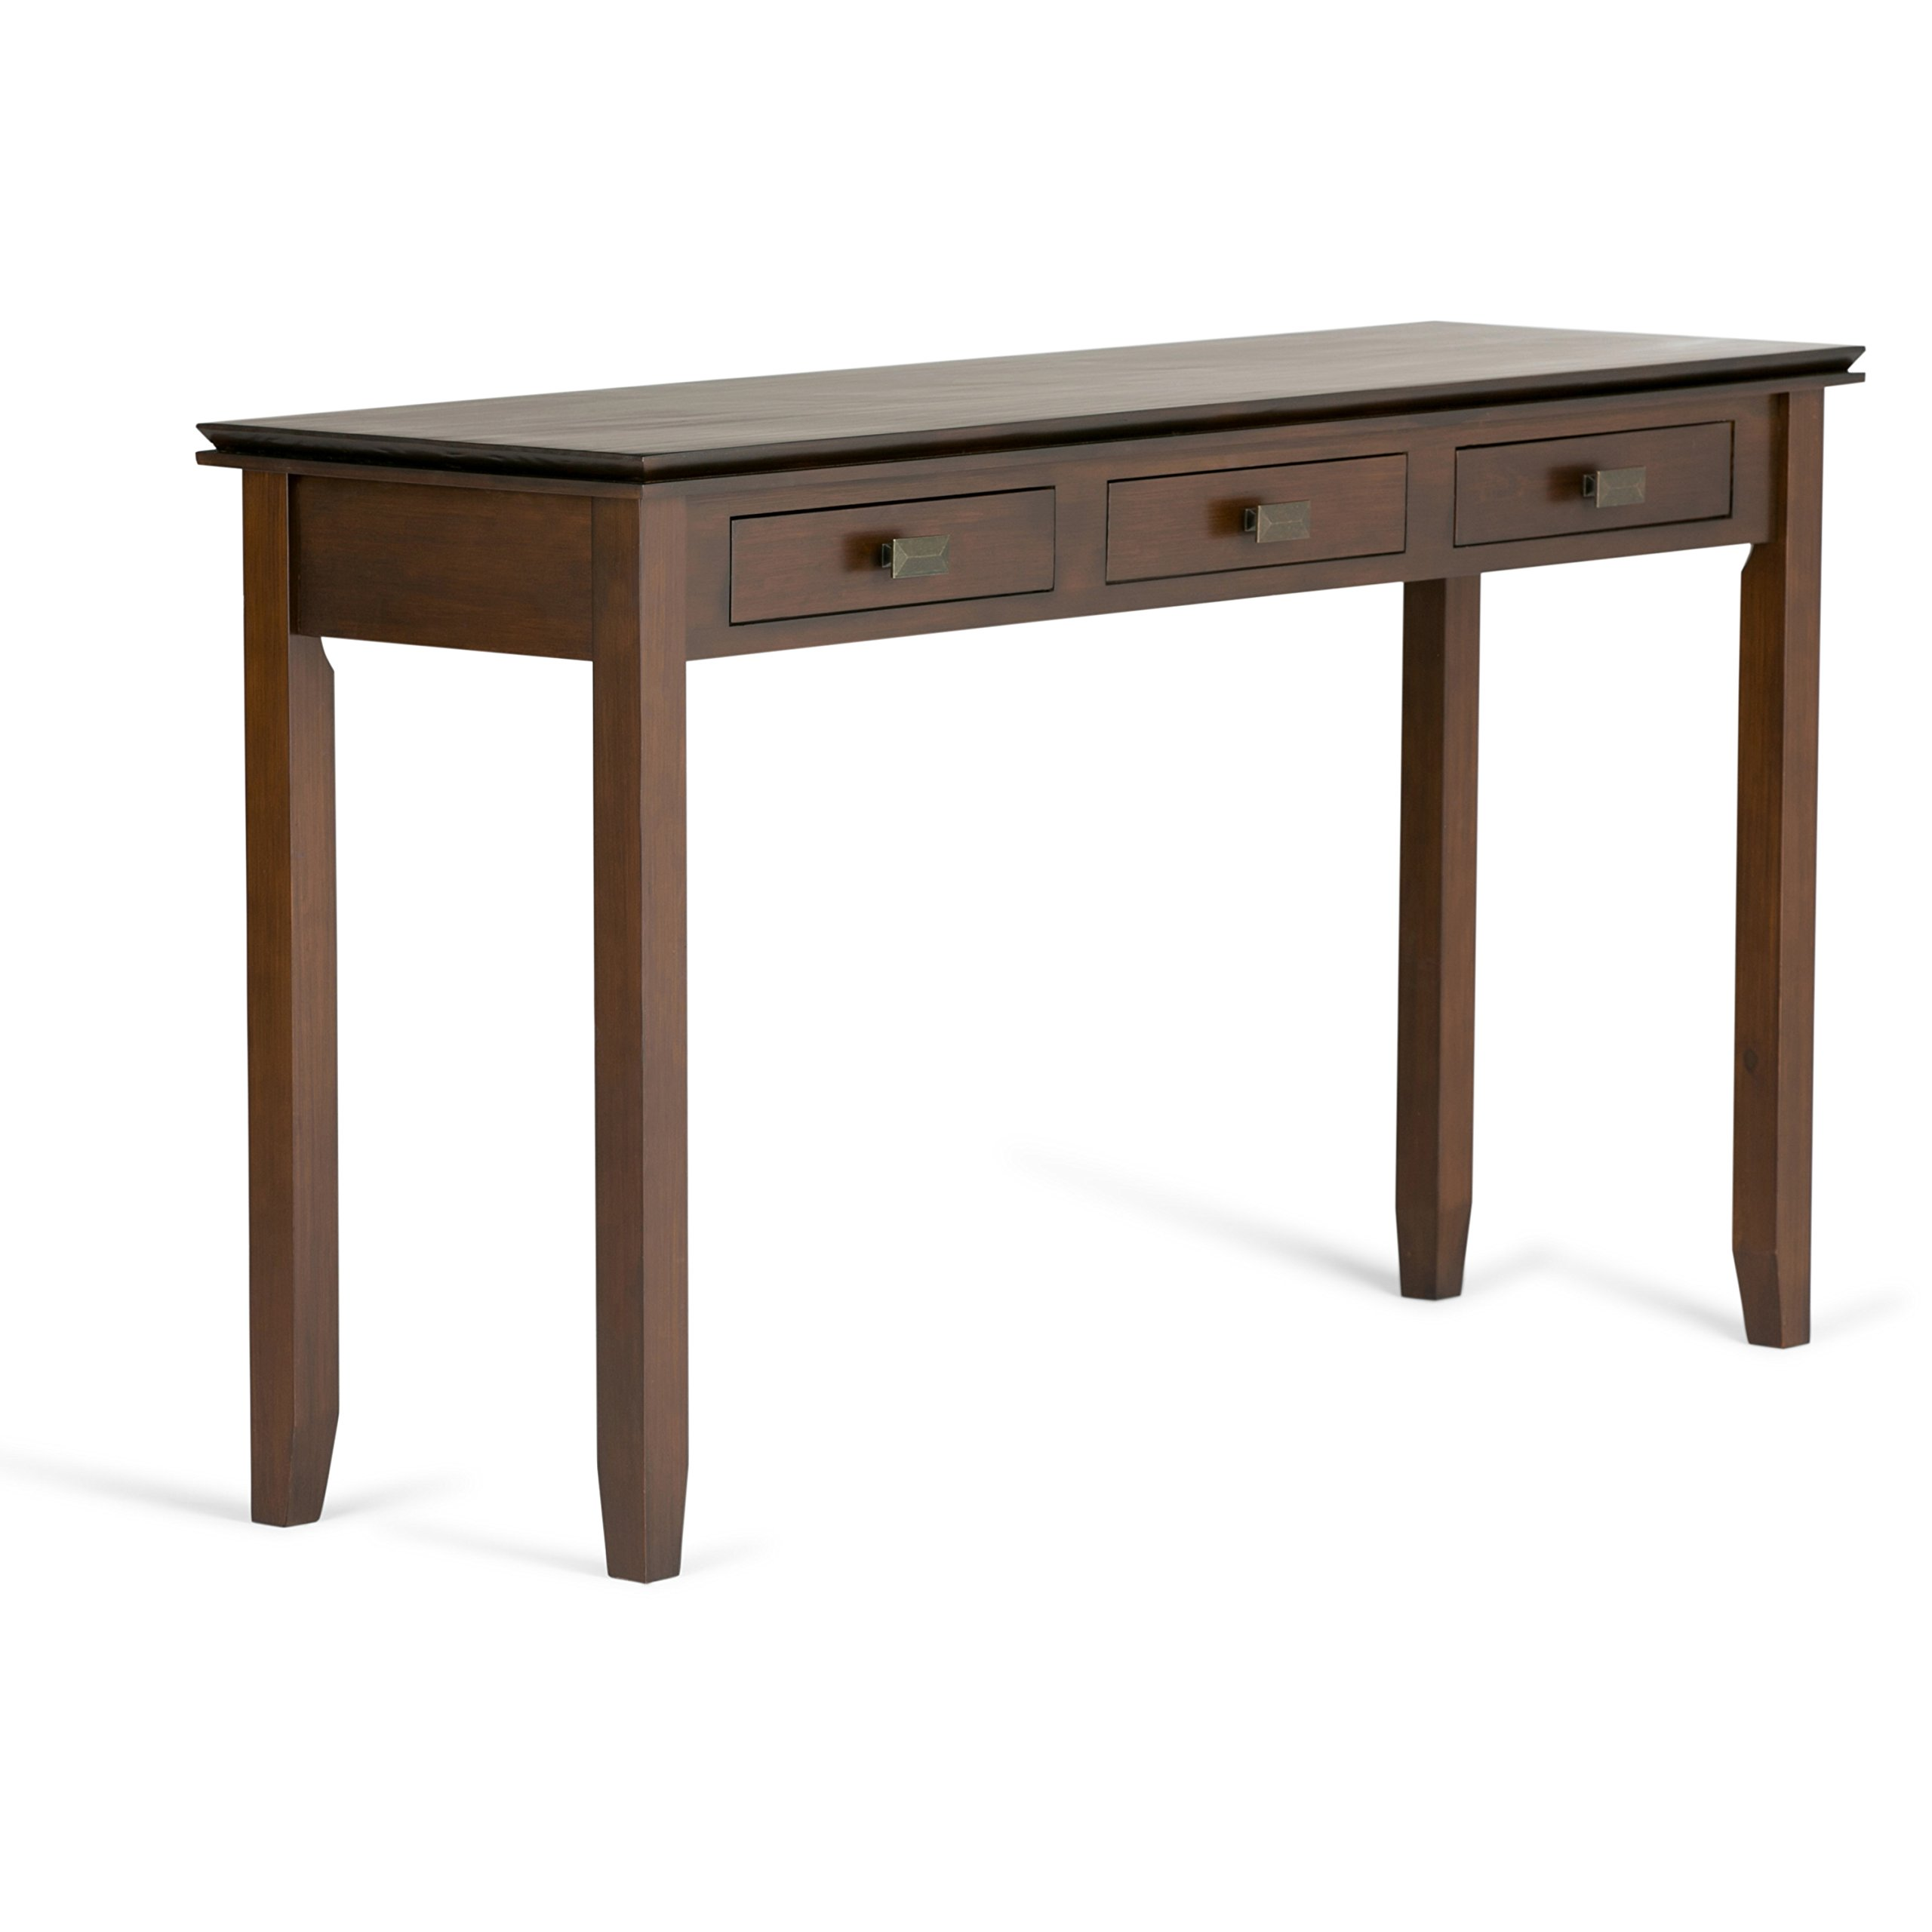 Simpli Home AXCHOL014 Artisan Solid Wood 54 inch wide Contemporary Wide Console Table in Medium Auburn Brown by Simpli Home